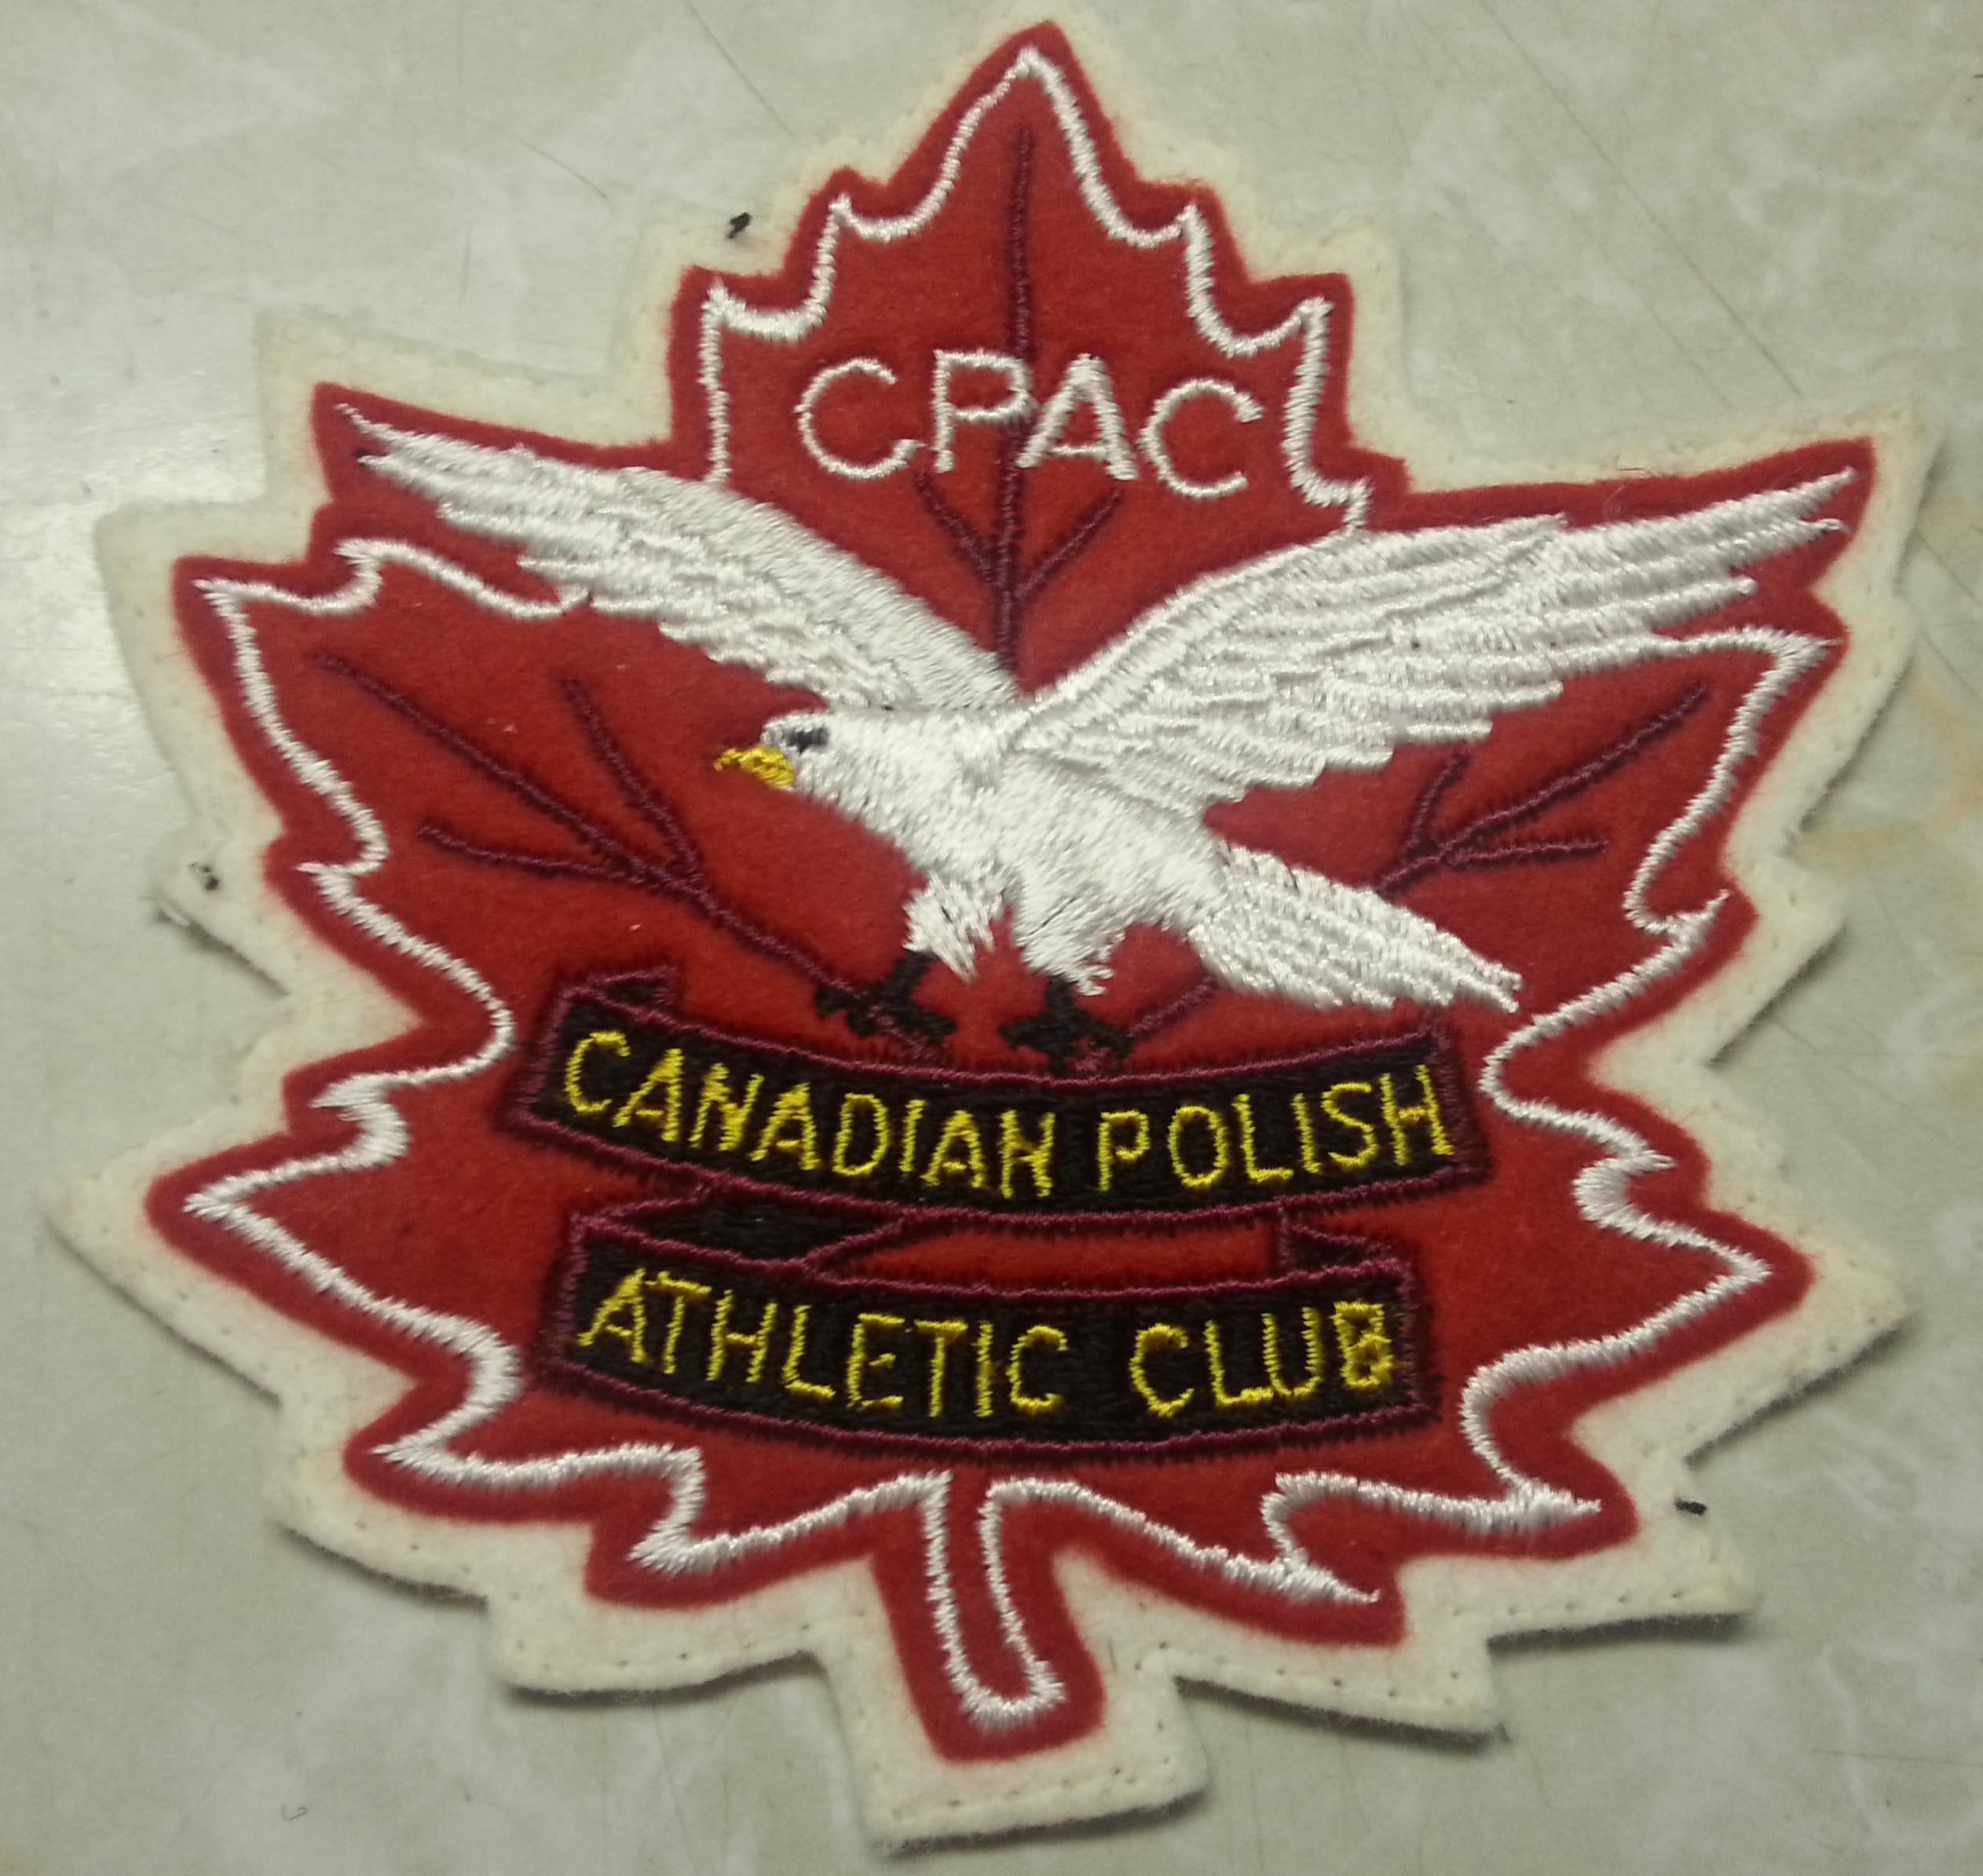 Canadian Polish Athletic Club